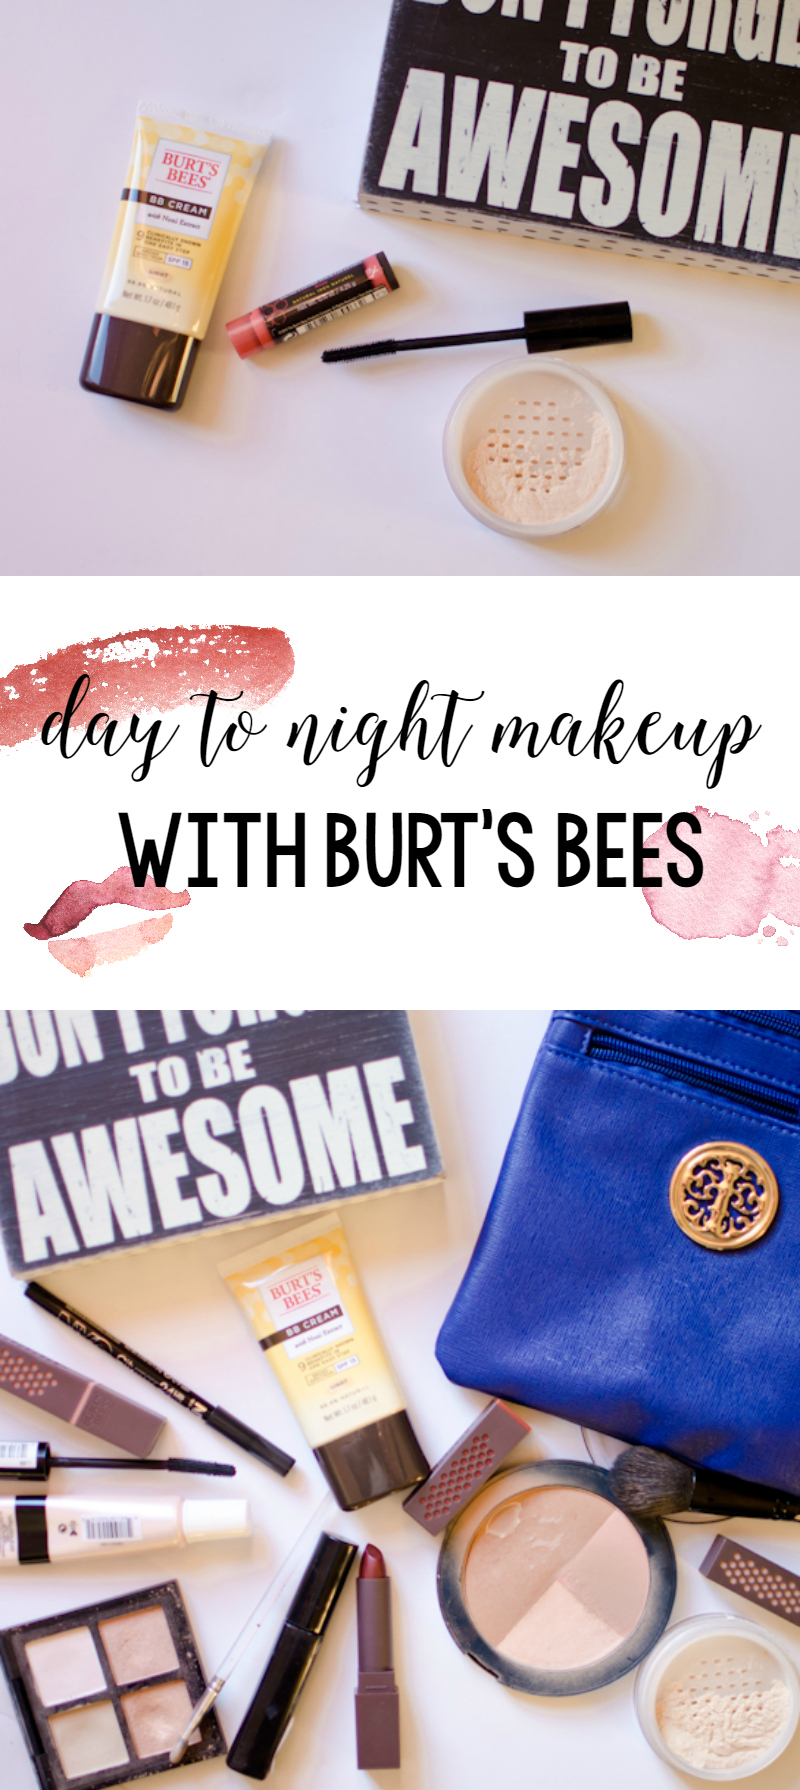 day to night makeup with burts bees